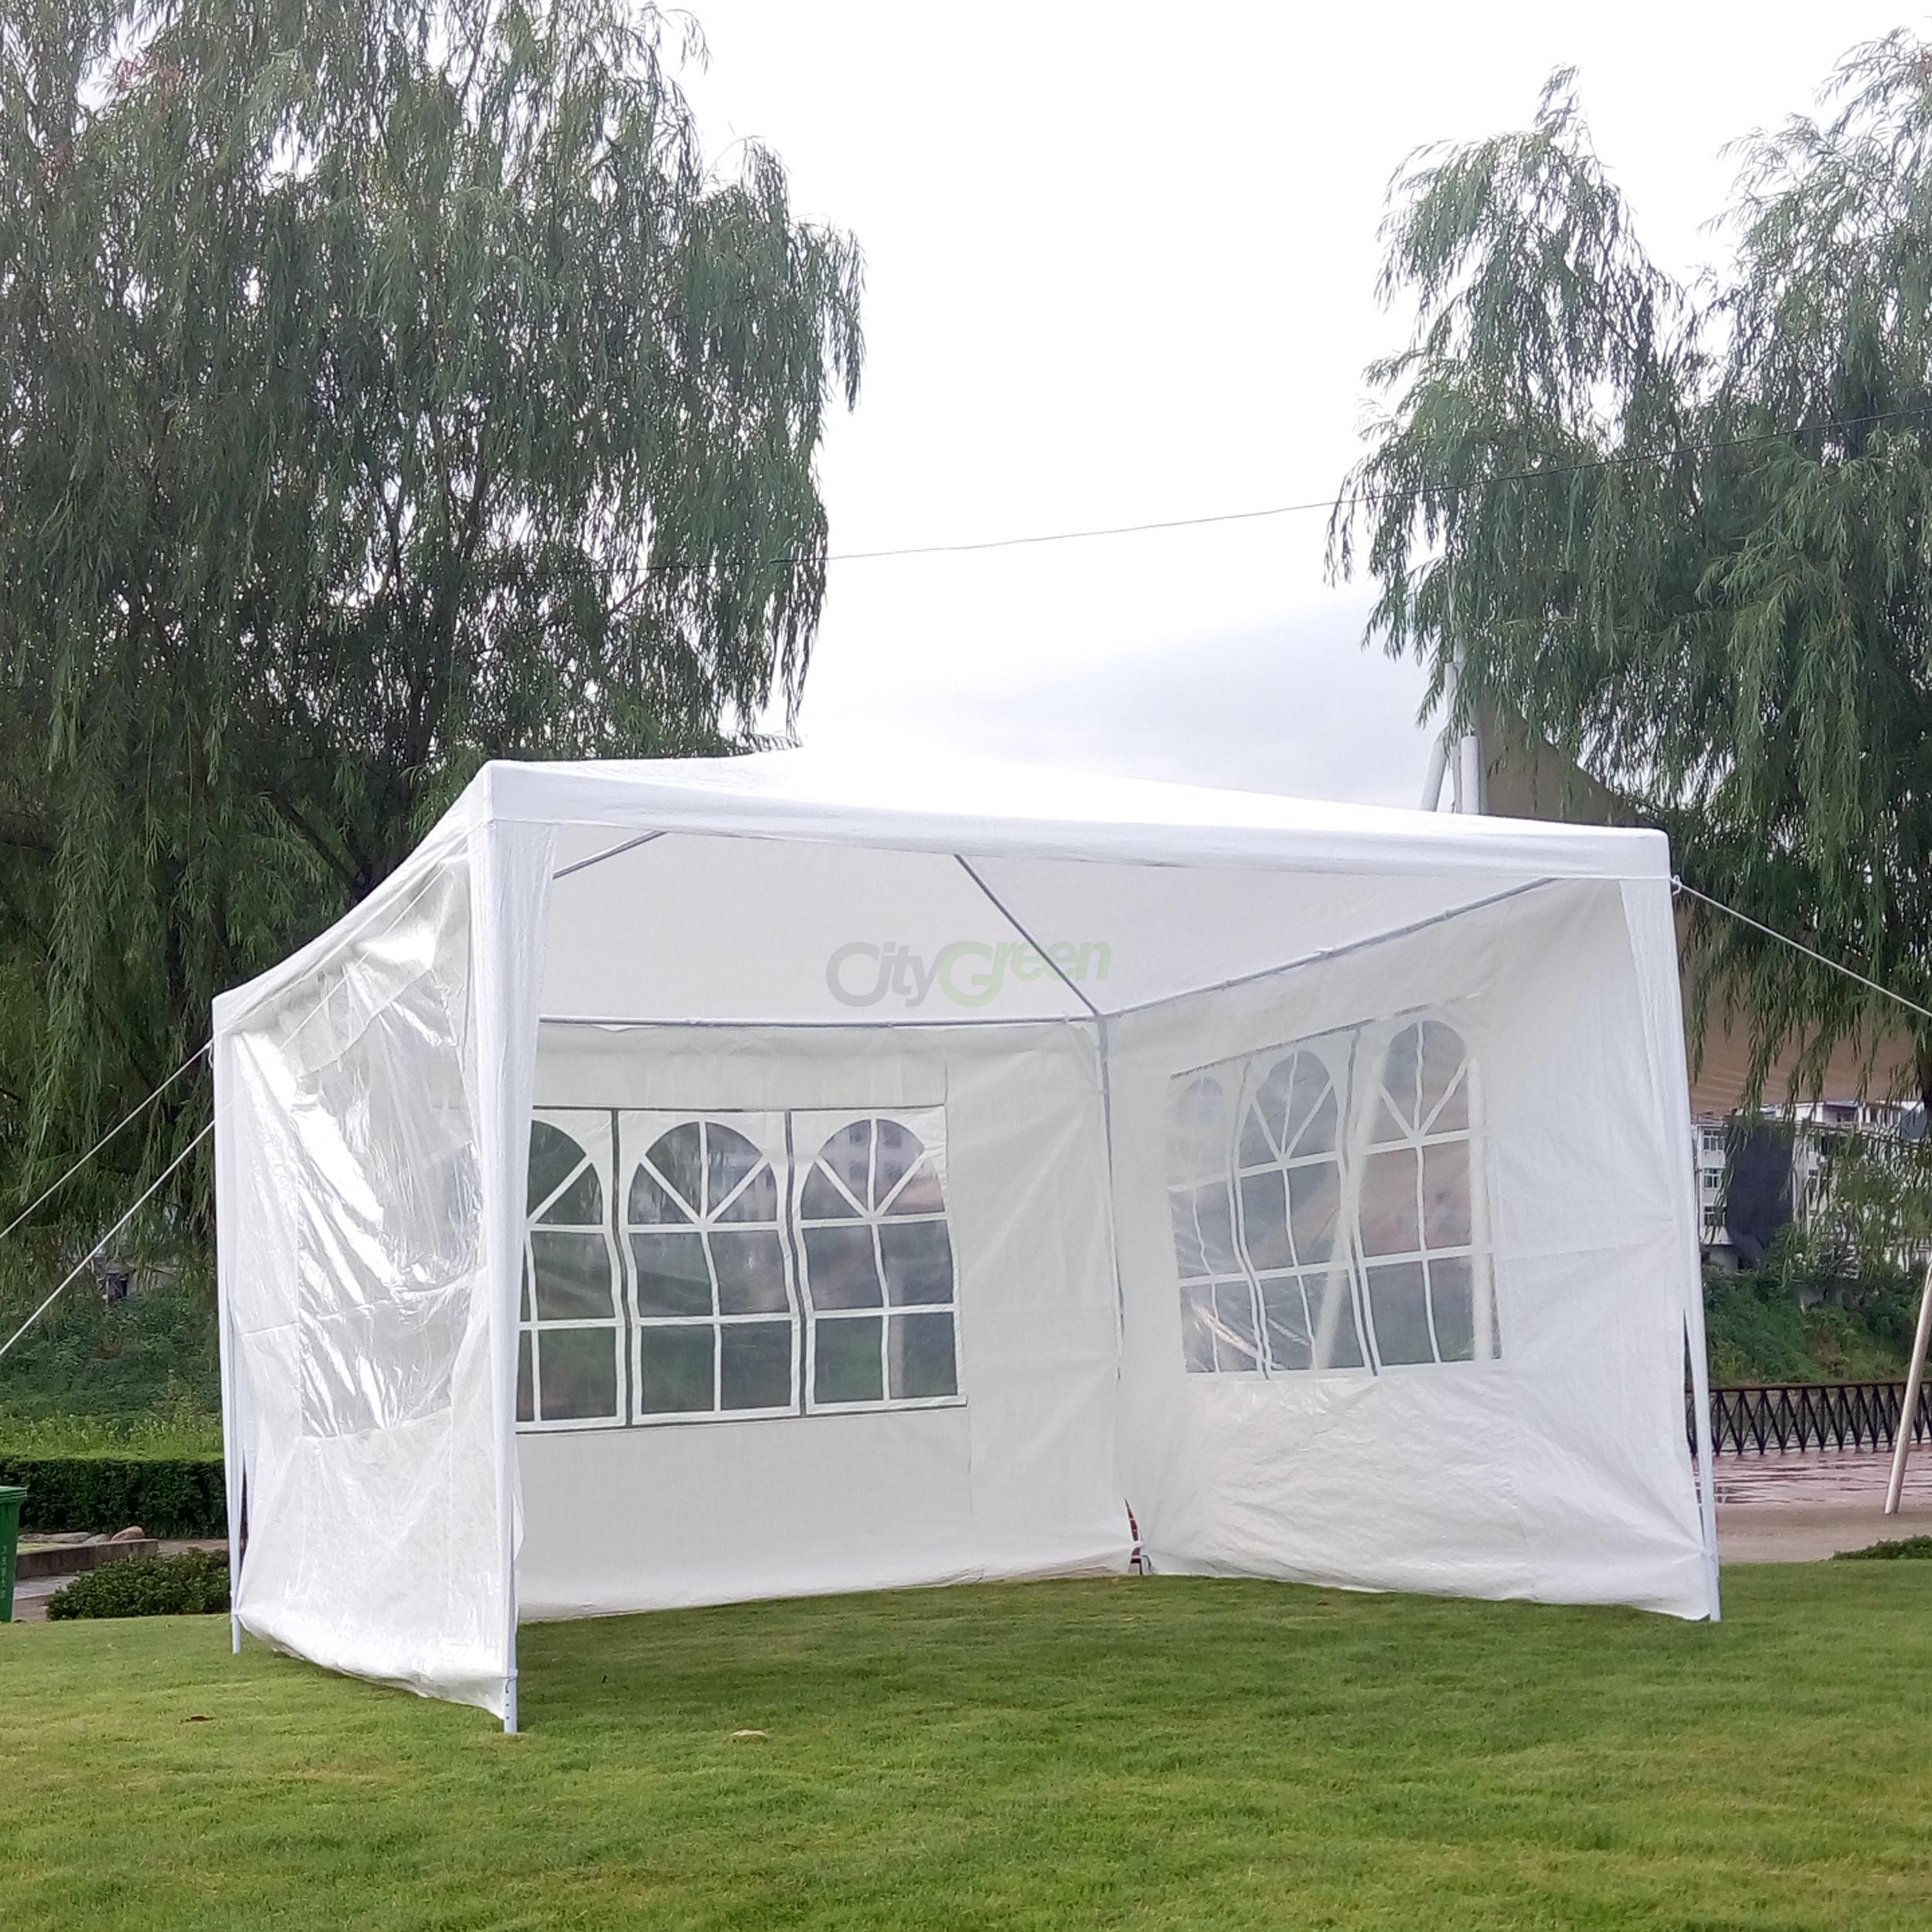 10 39 x 10 39 party tent outdoor heavy duty gazebo wedding canopy w 3 side walls ebay. Black Bedroom Furniture Sets. Home Design Ideas